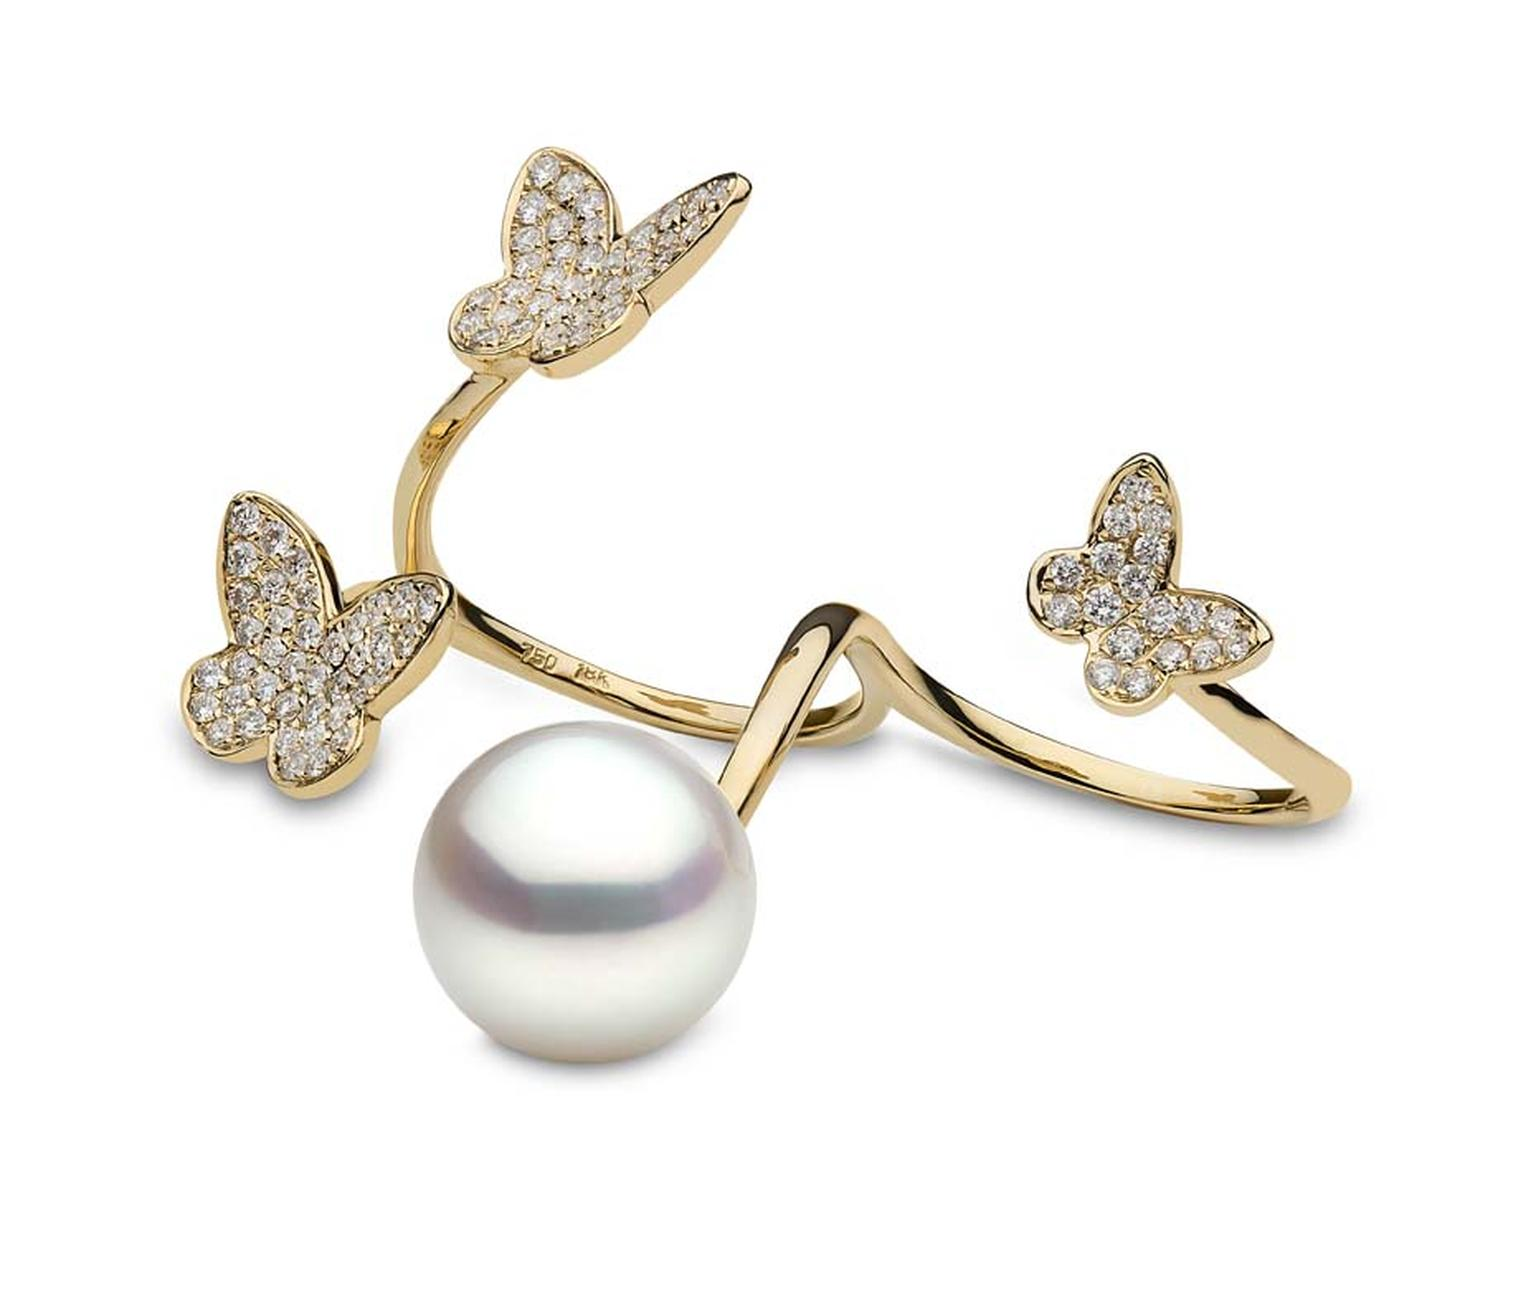 YOKO London Australian South Sea pearl double finger ring, as worn by actress Kara Tointon at this year's BAFTA ceremony.